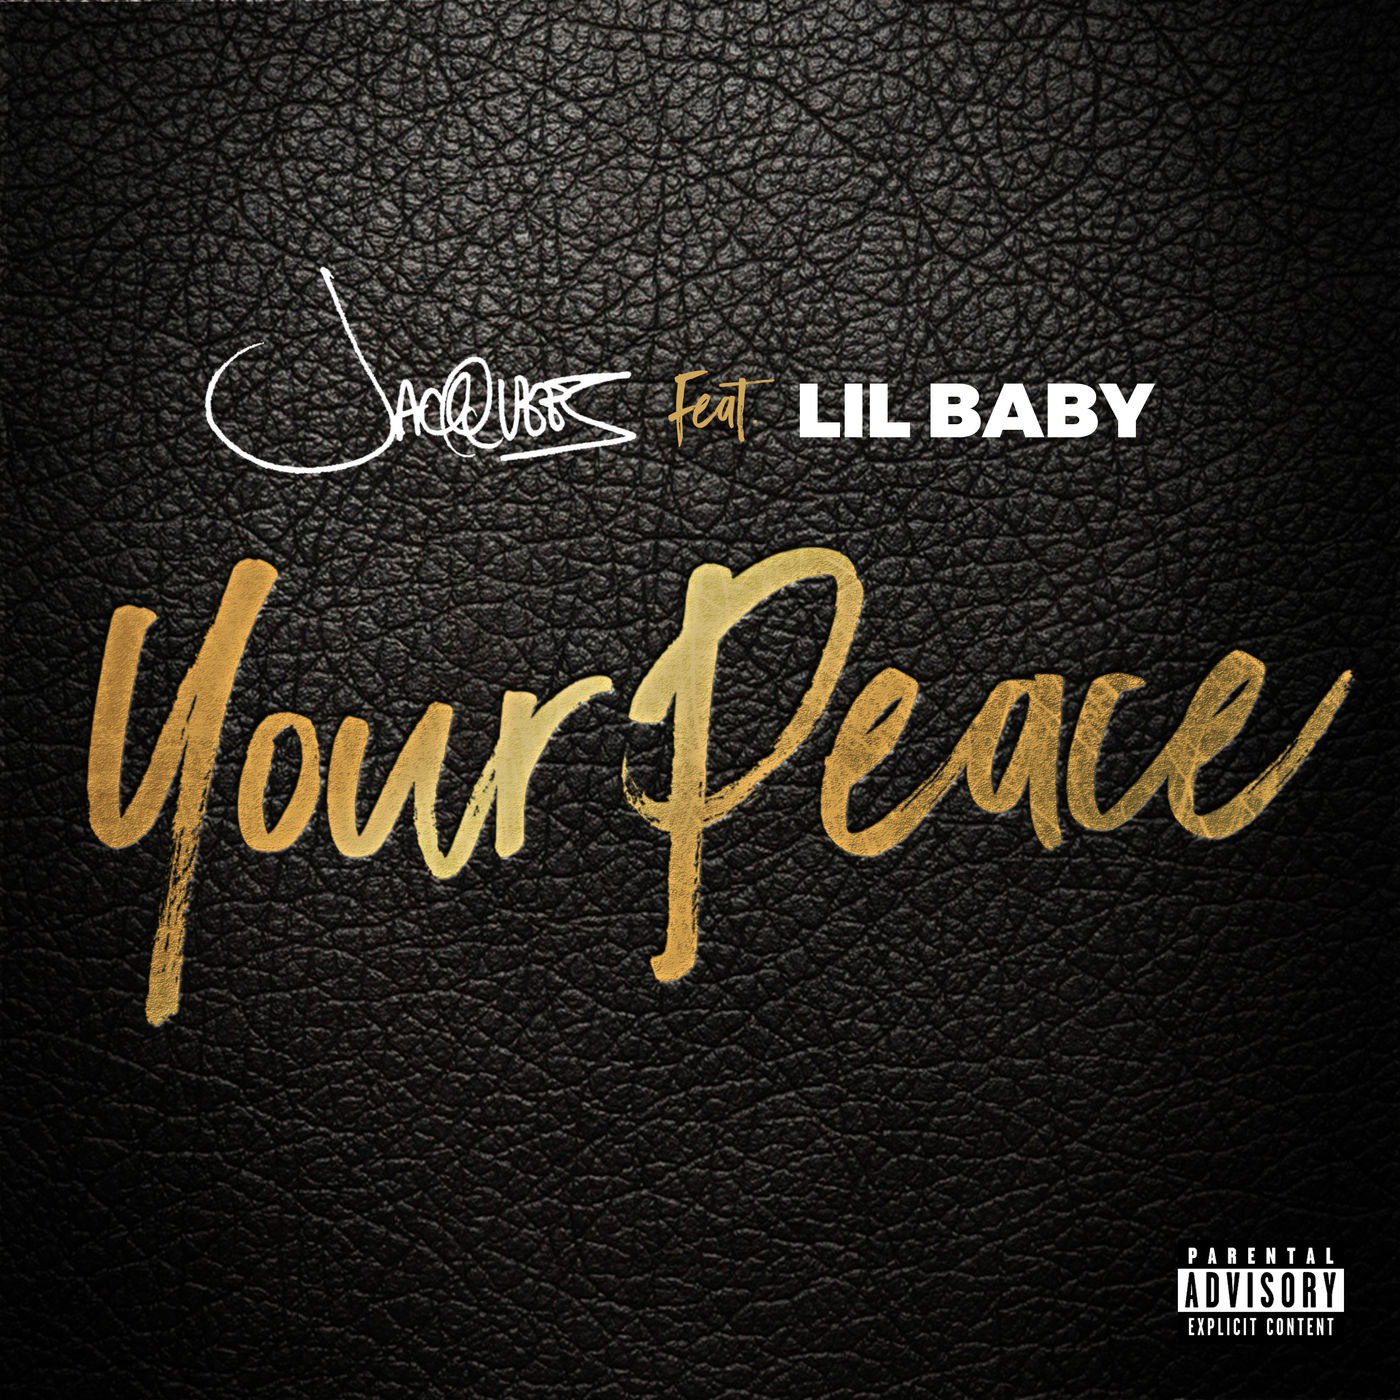 yourpeace jacquees